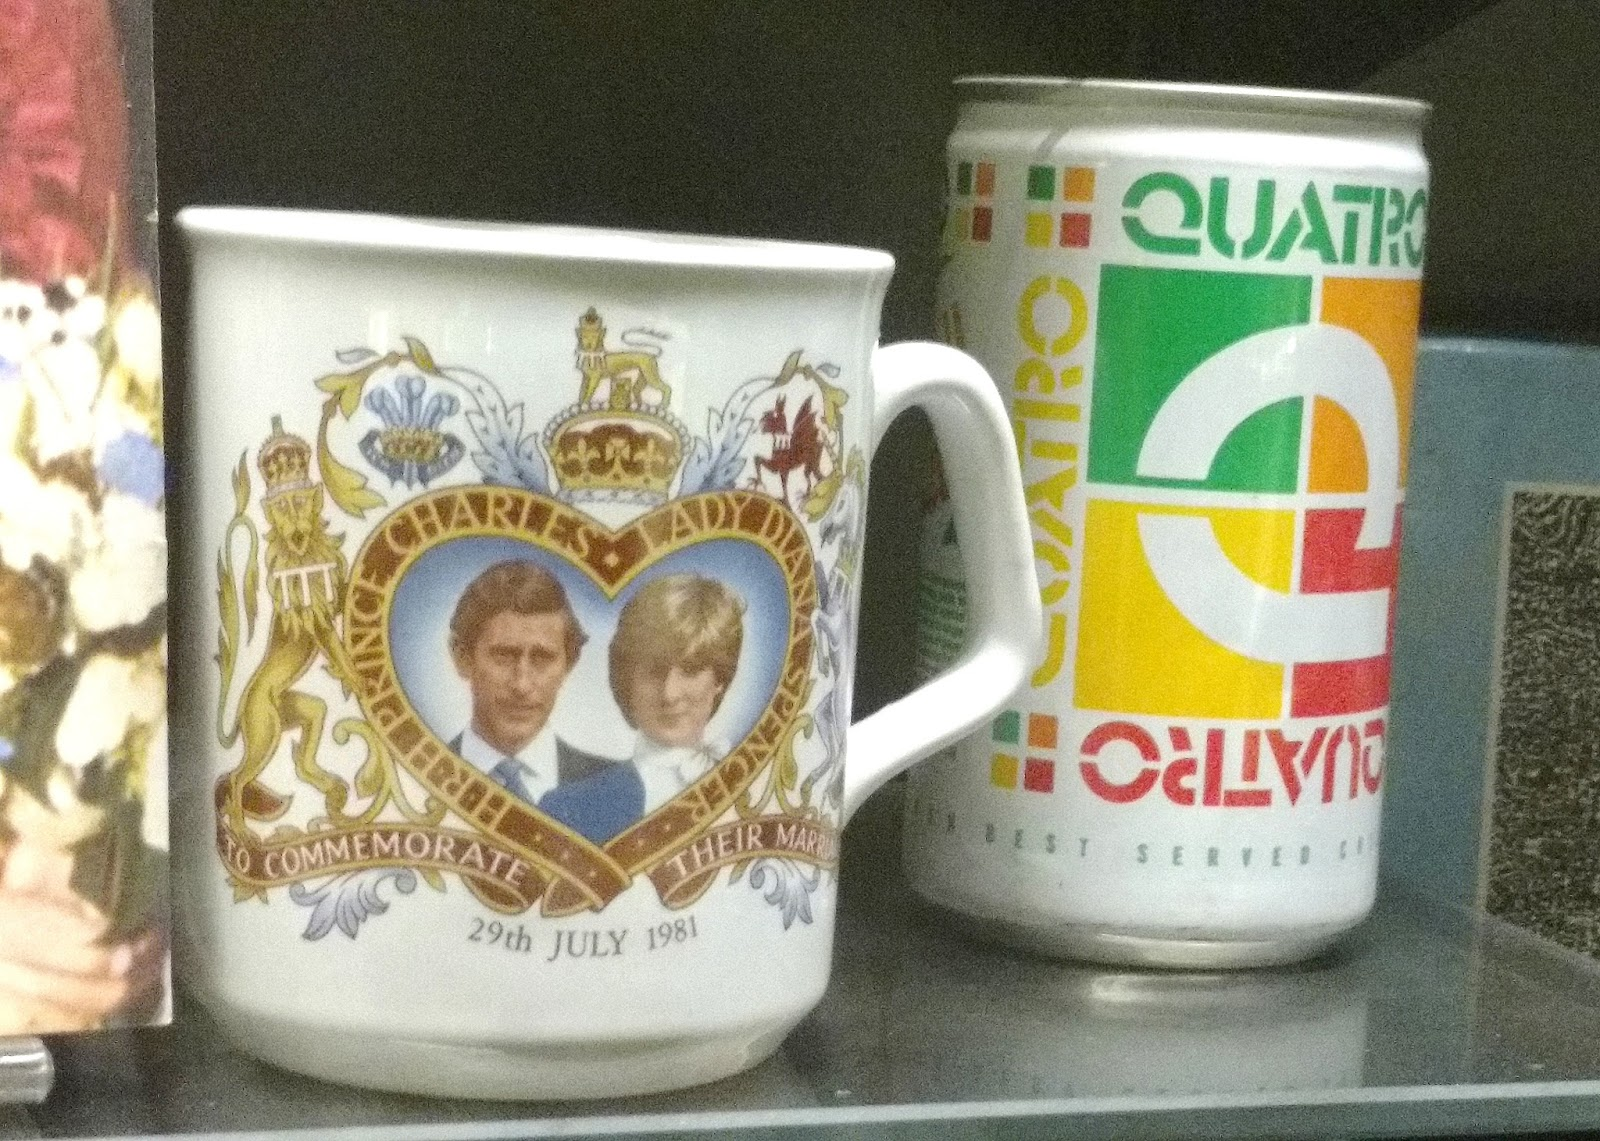 Like at Chez Bruce, the Museum of Brands also makes me nostalgic (sort of!) for '80s foods.